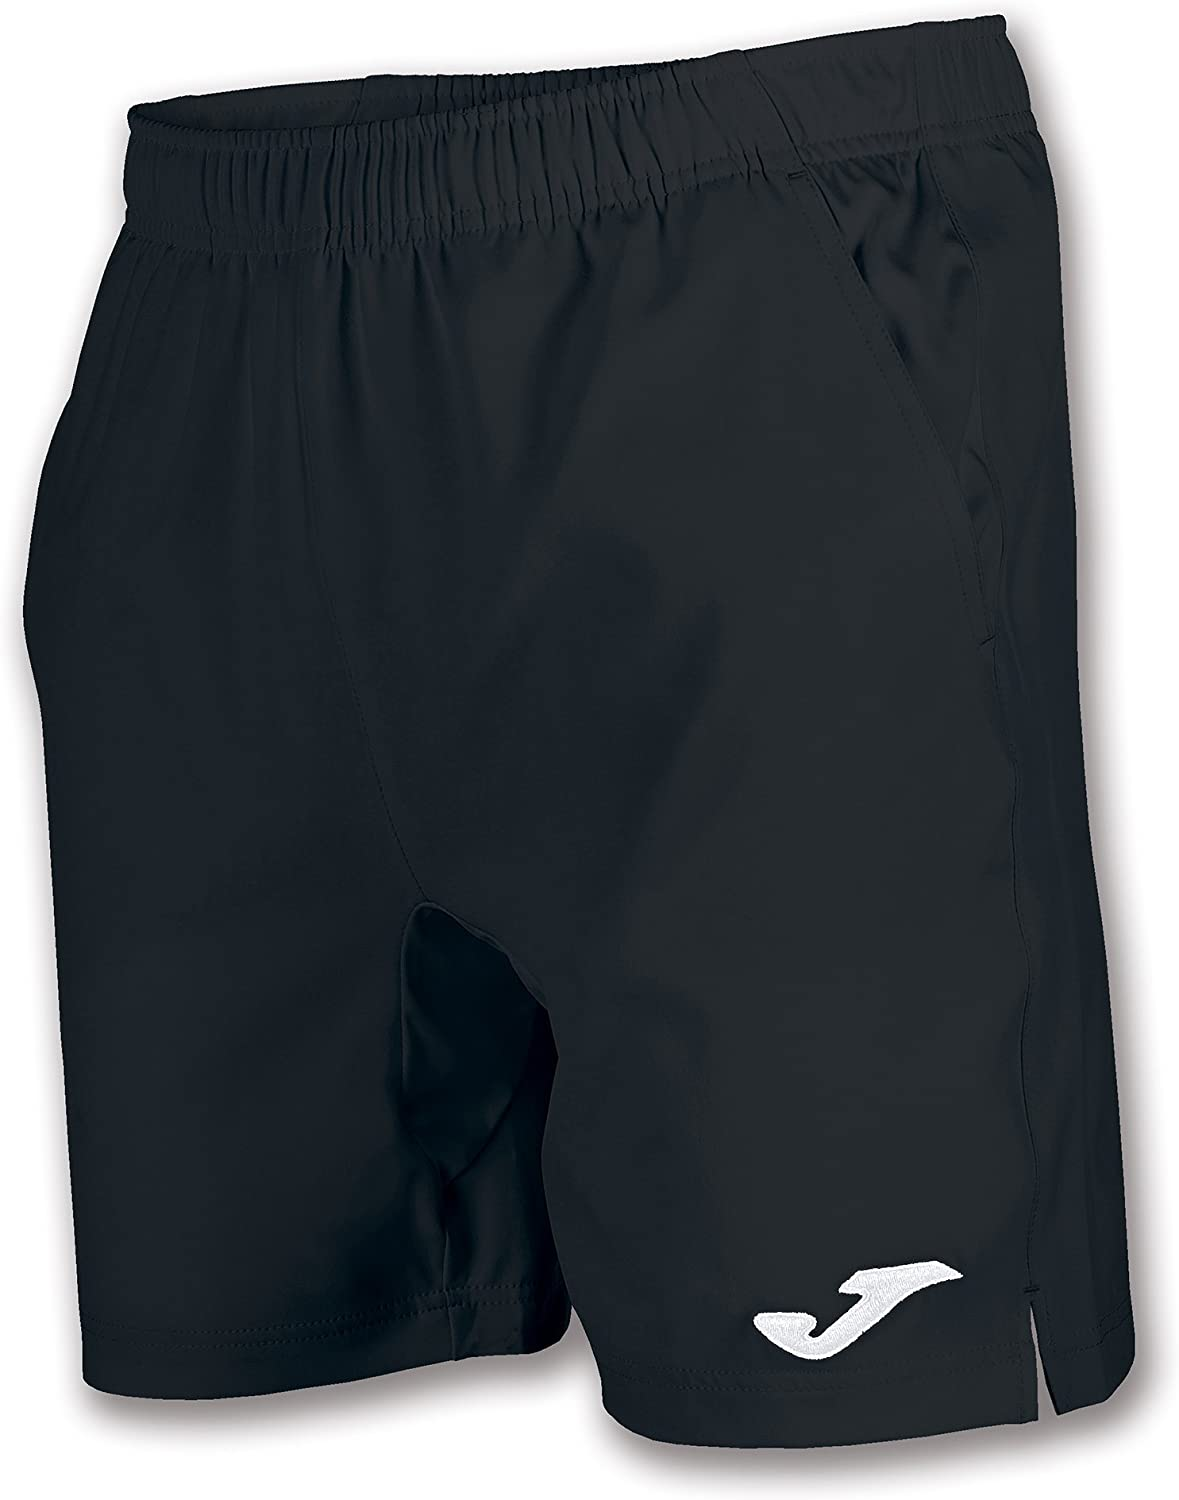 Joma Mens Master Tennis Shorts